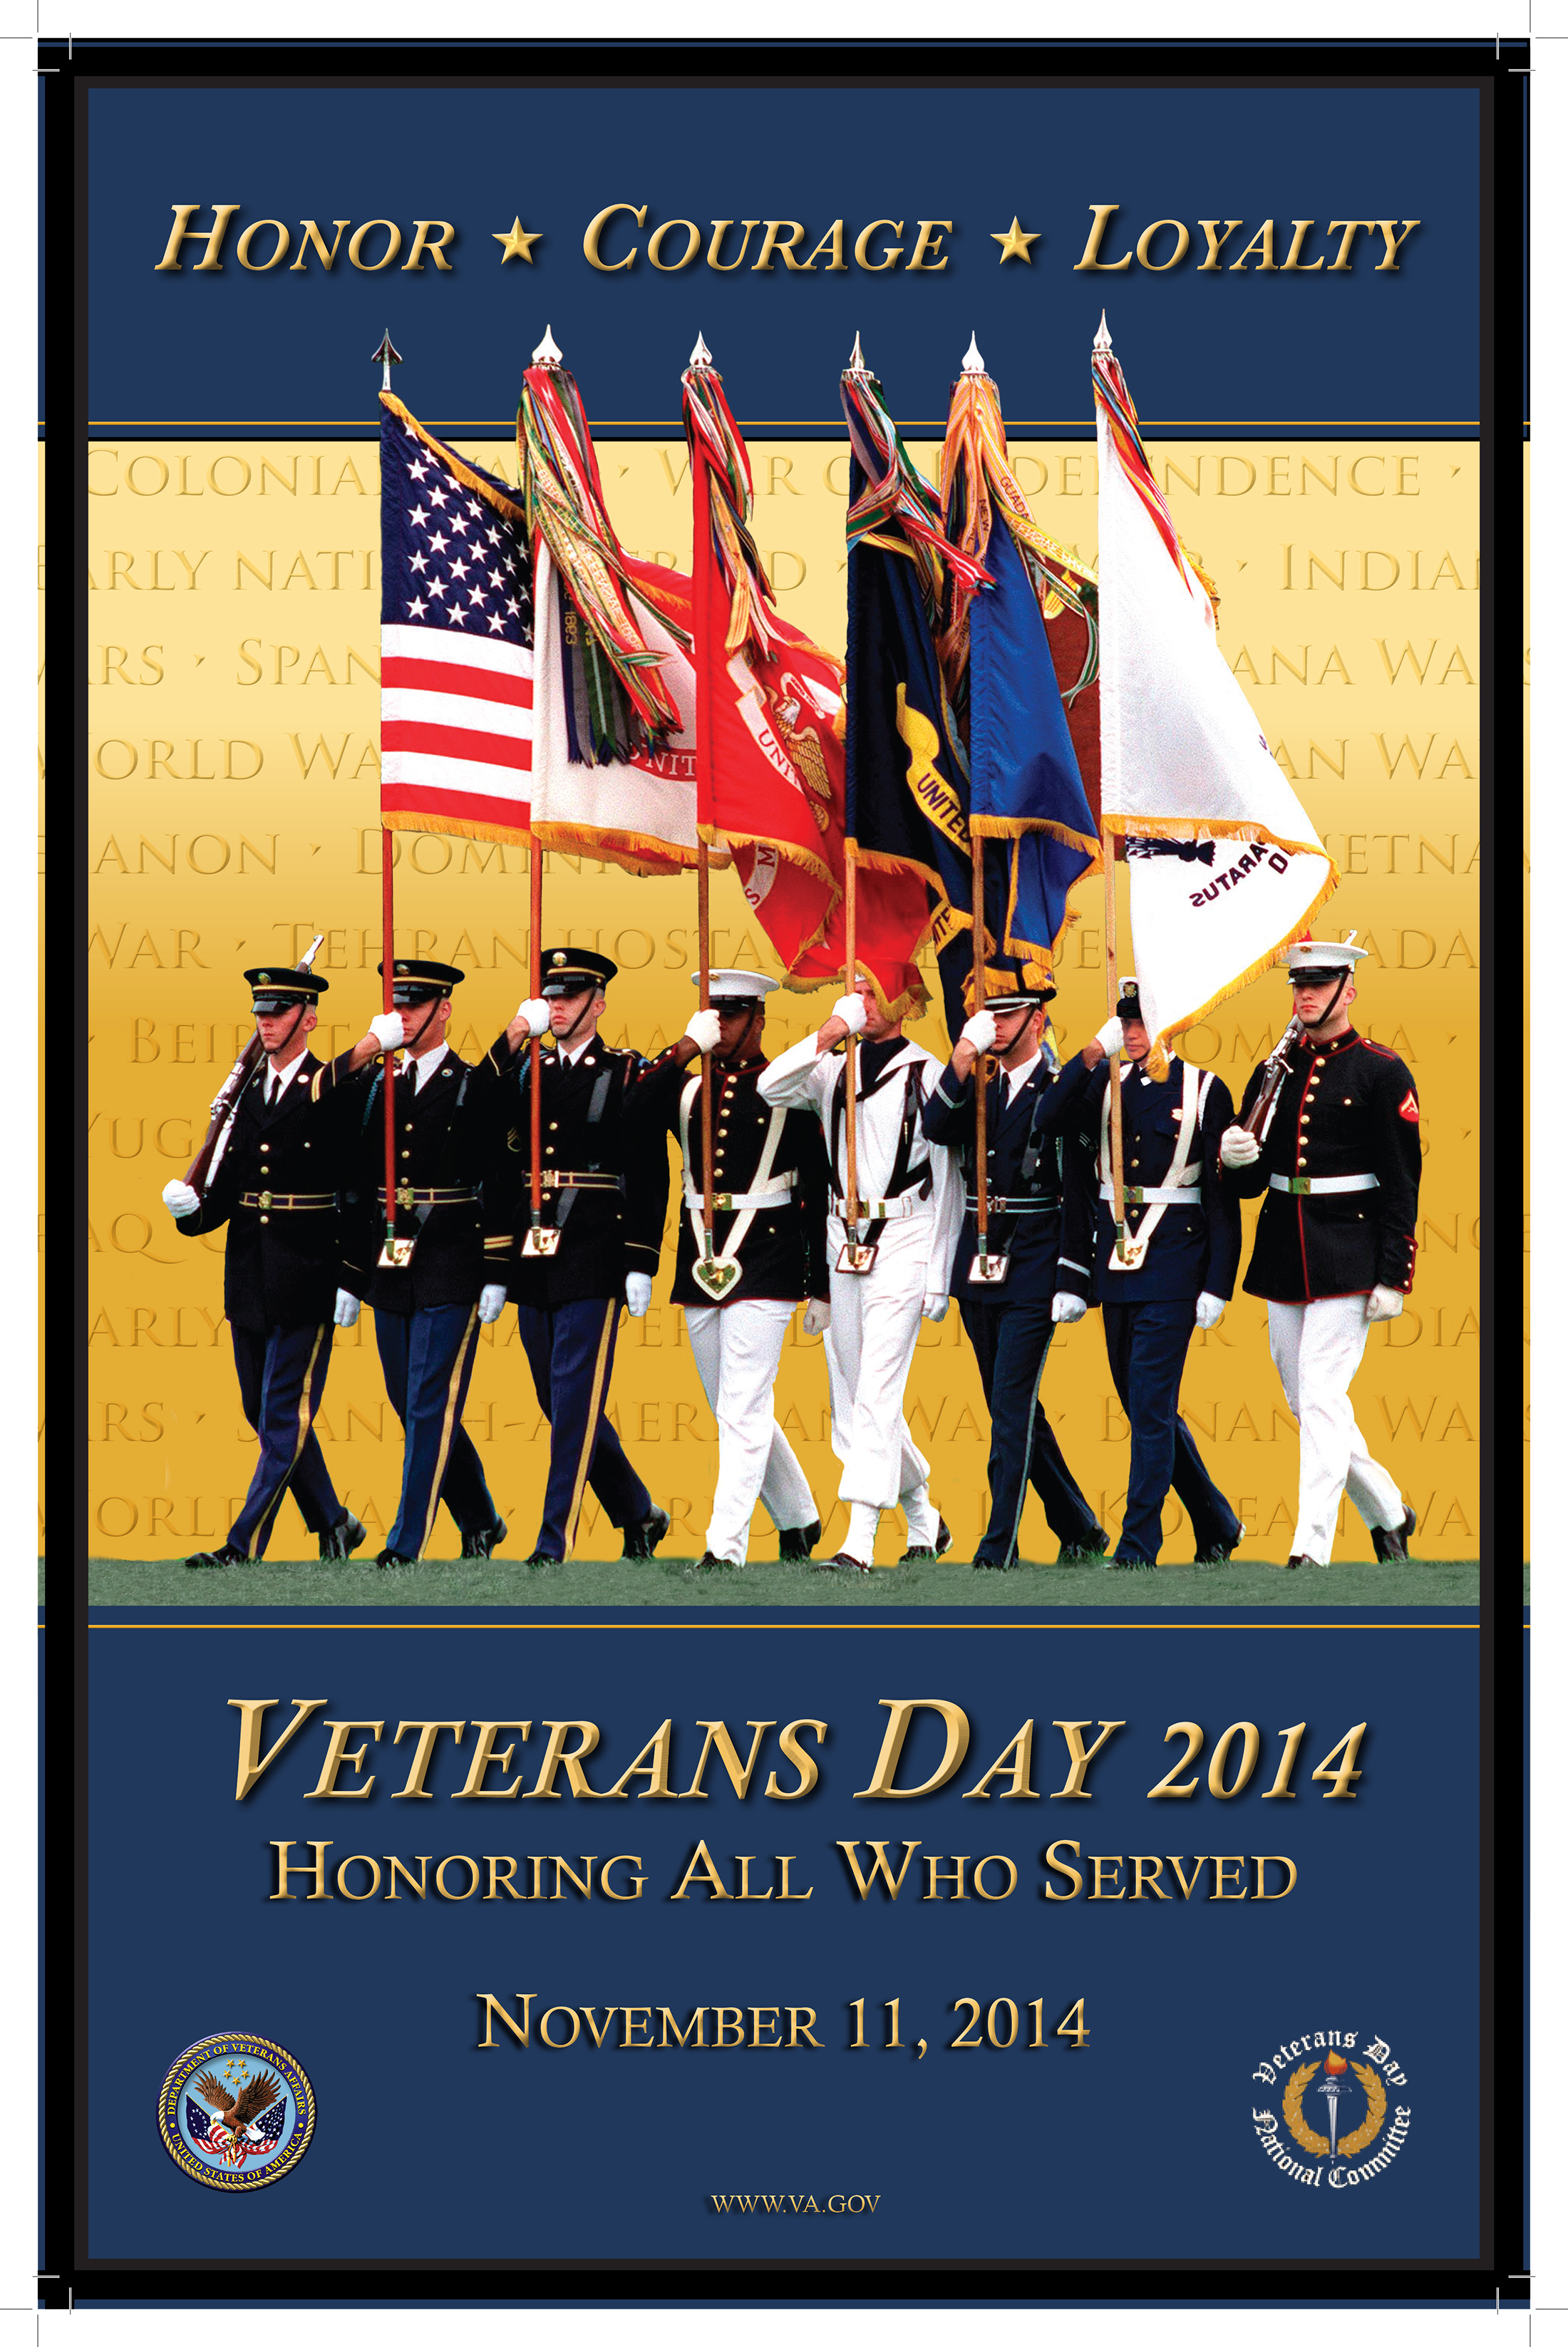 Veterans Day 2014 Clipart 2014 Veterans Day Poster